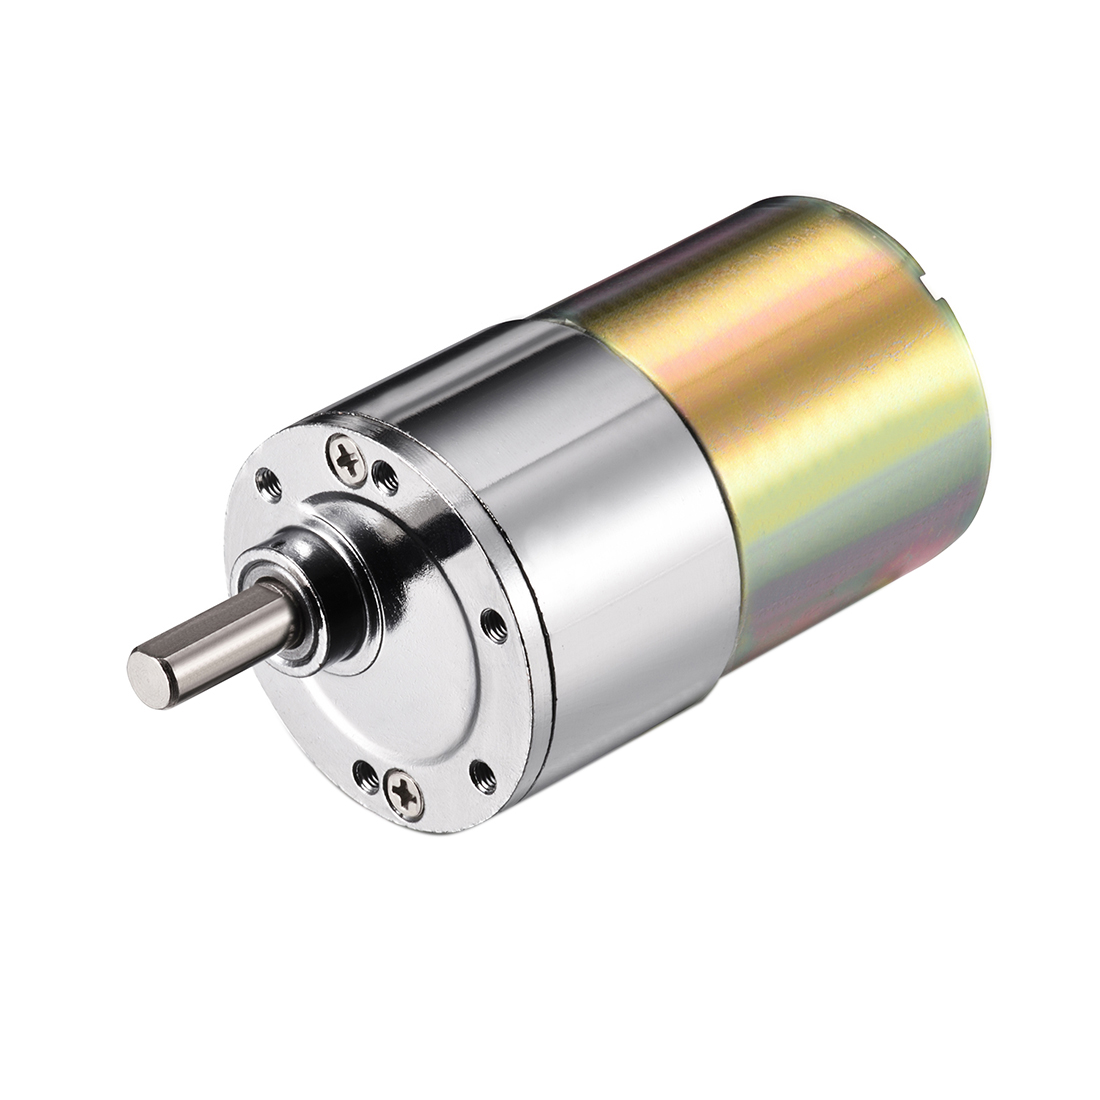 DC 12V 150RPM Micro Gear Box Motor Speed Reduction Electric Gearbox Eccentric Output Shaft